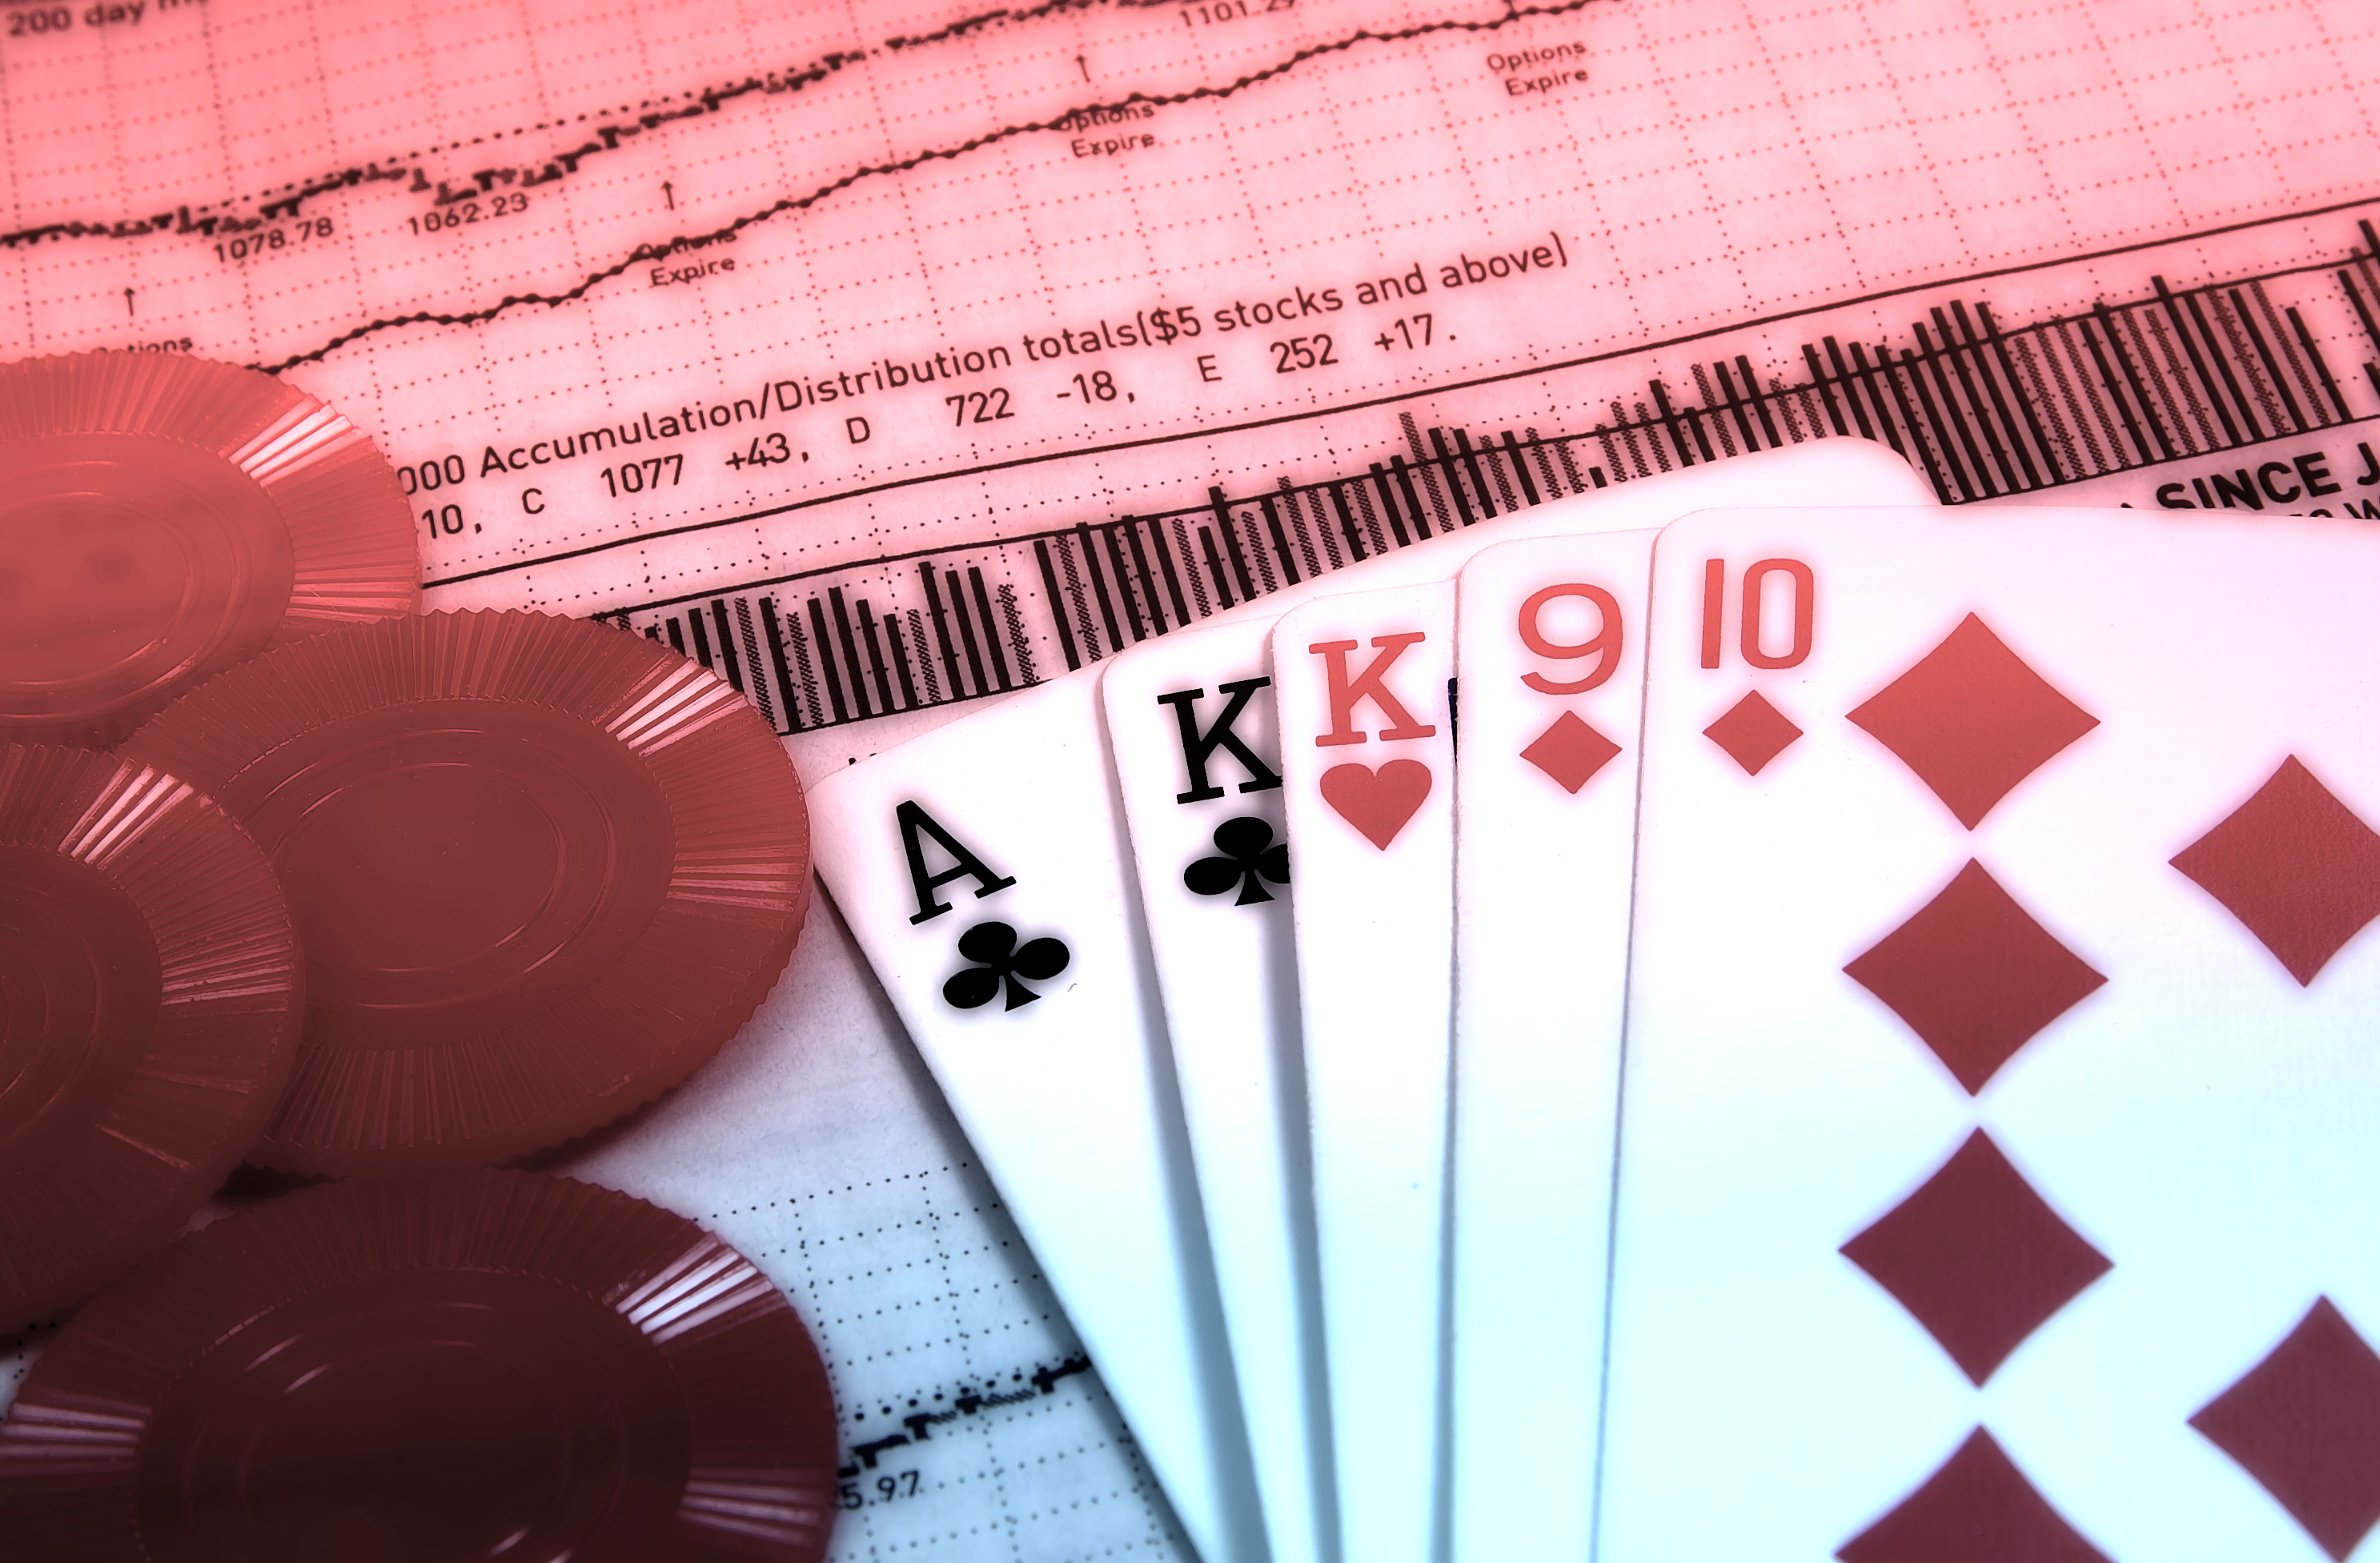 irs gambling winnings and losses form